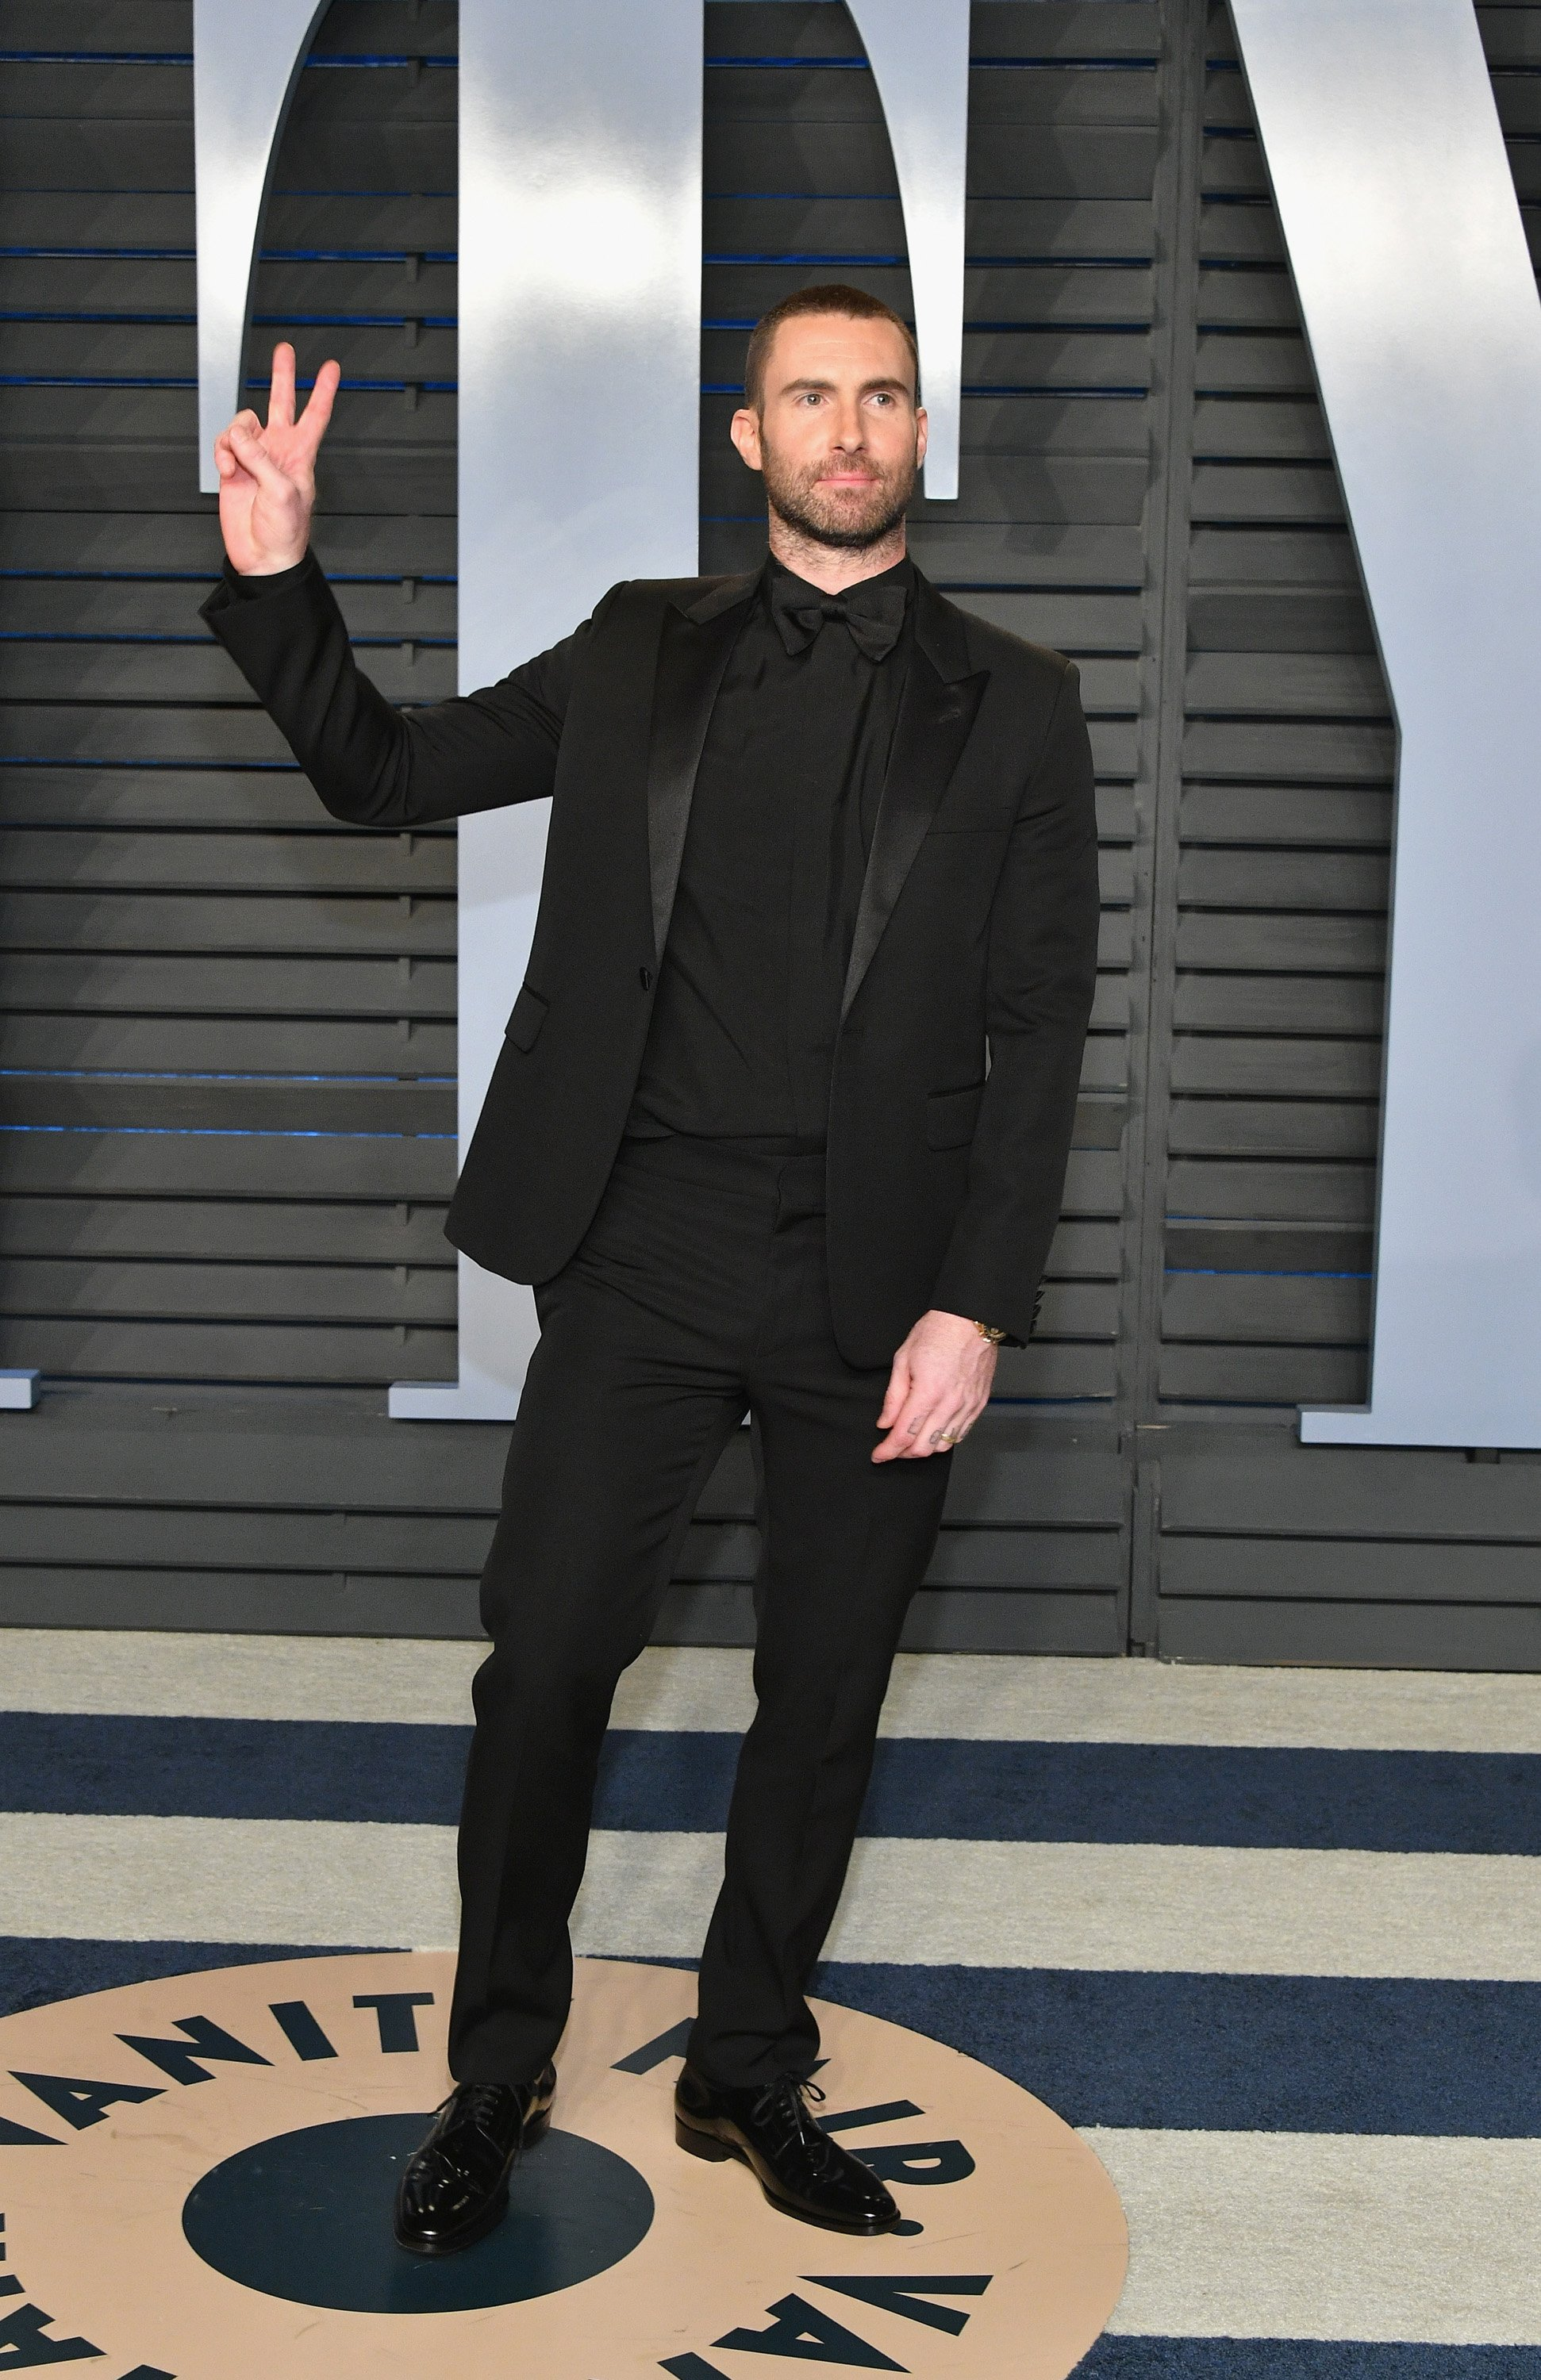 Adam Levine attends the 2018 Vanity Fair Oscar Party at Wallis Annenberg Center for the Performing Arts on March 4, 2018 in Beverly Hills, California | Photo: Getty Images